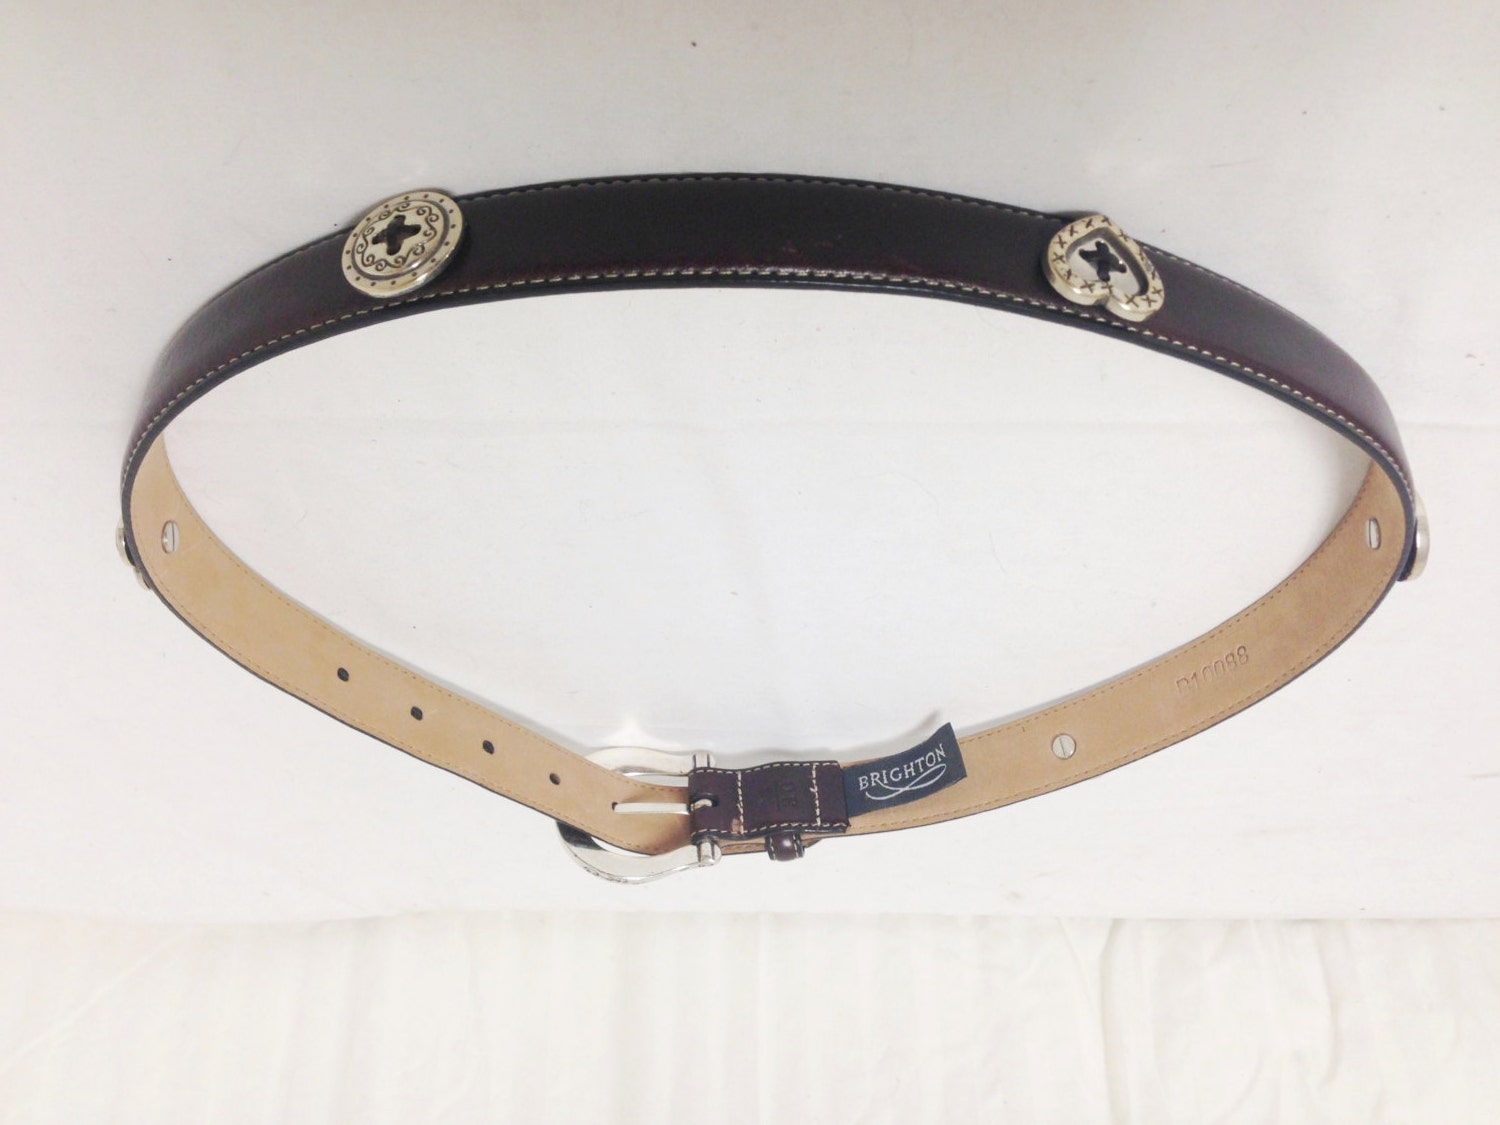 brighton leather belt silver tone hearts brown belt buckle